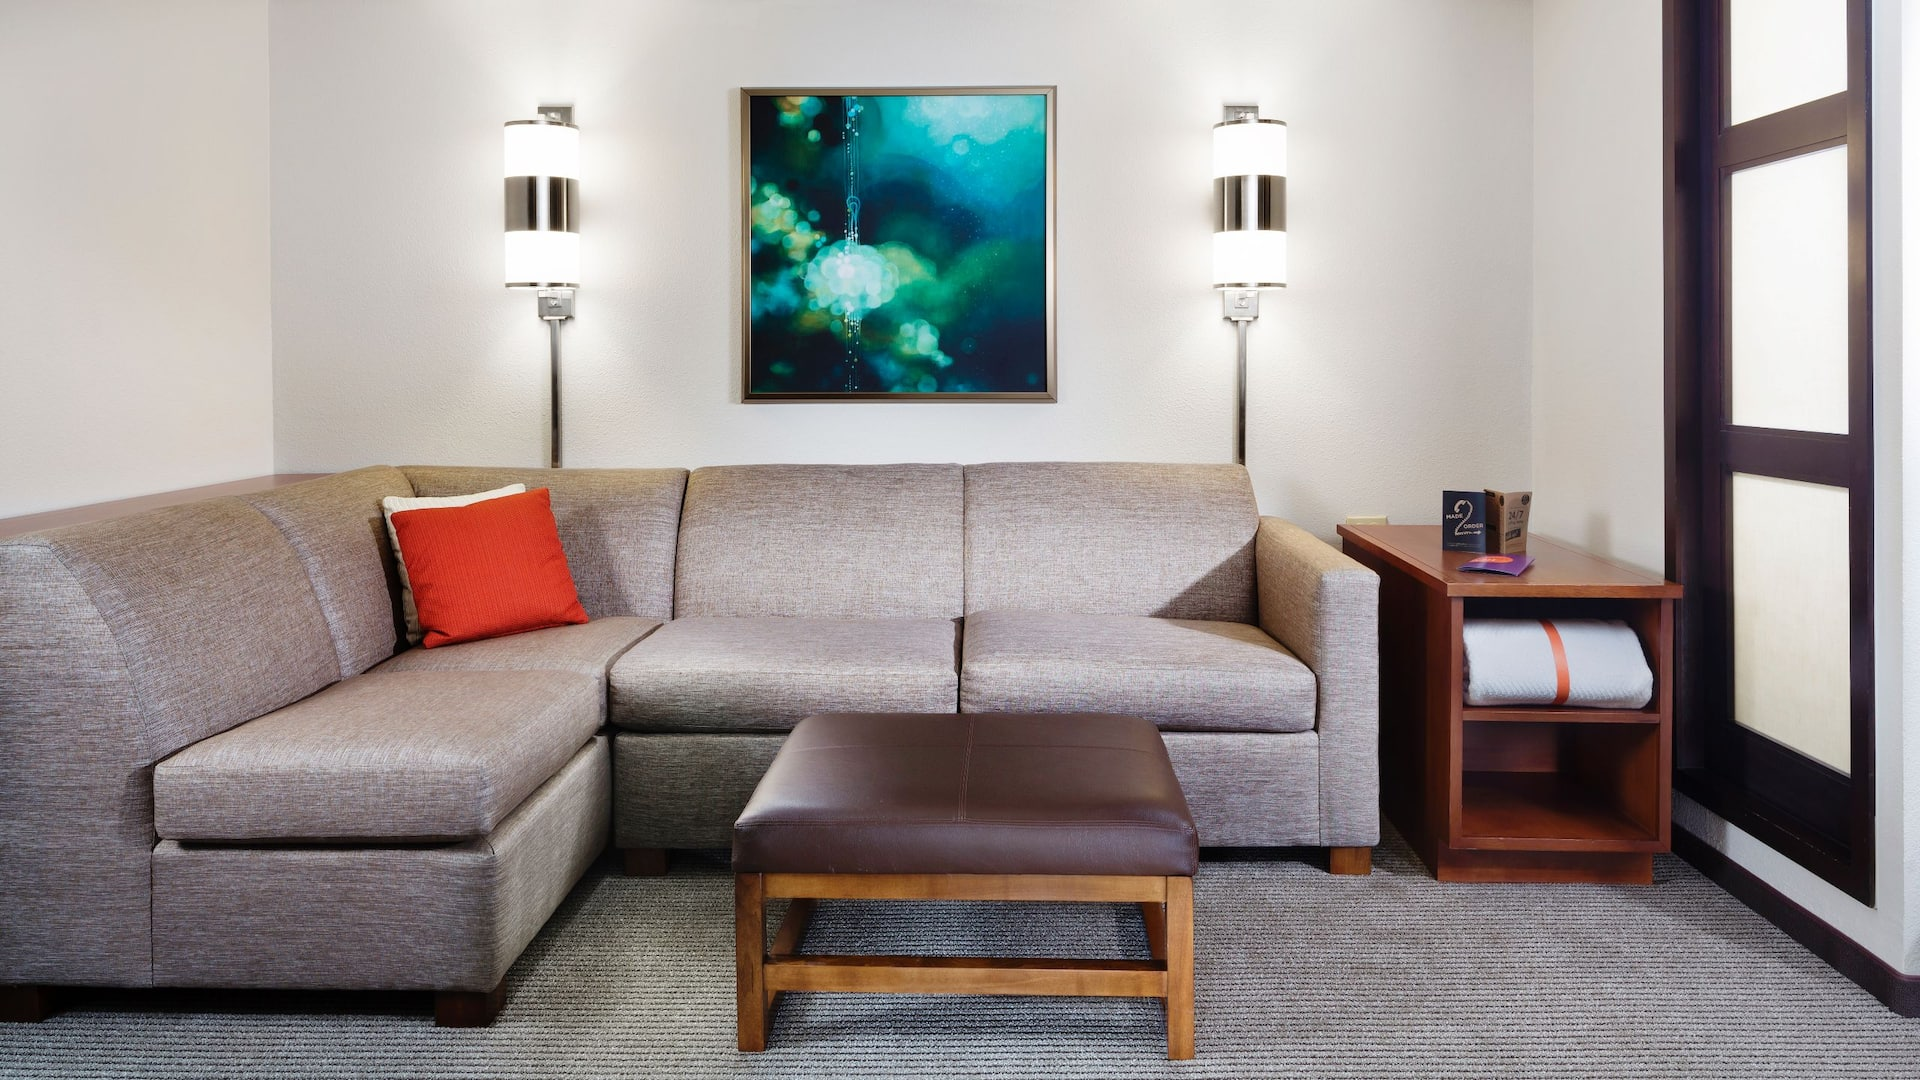 Hyatt Place Dallas / Plano – King Room Living Area